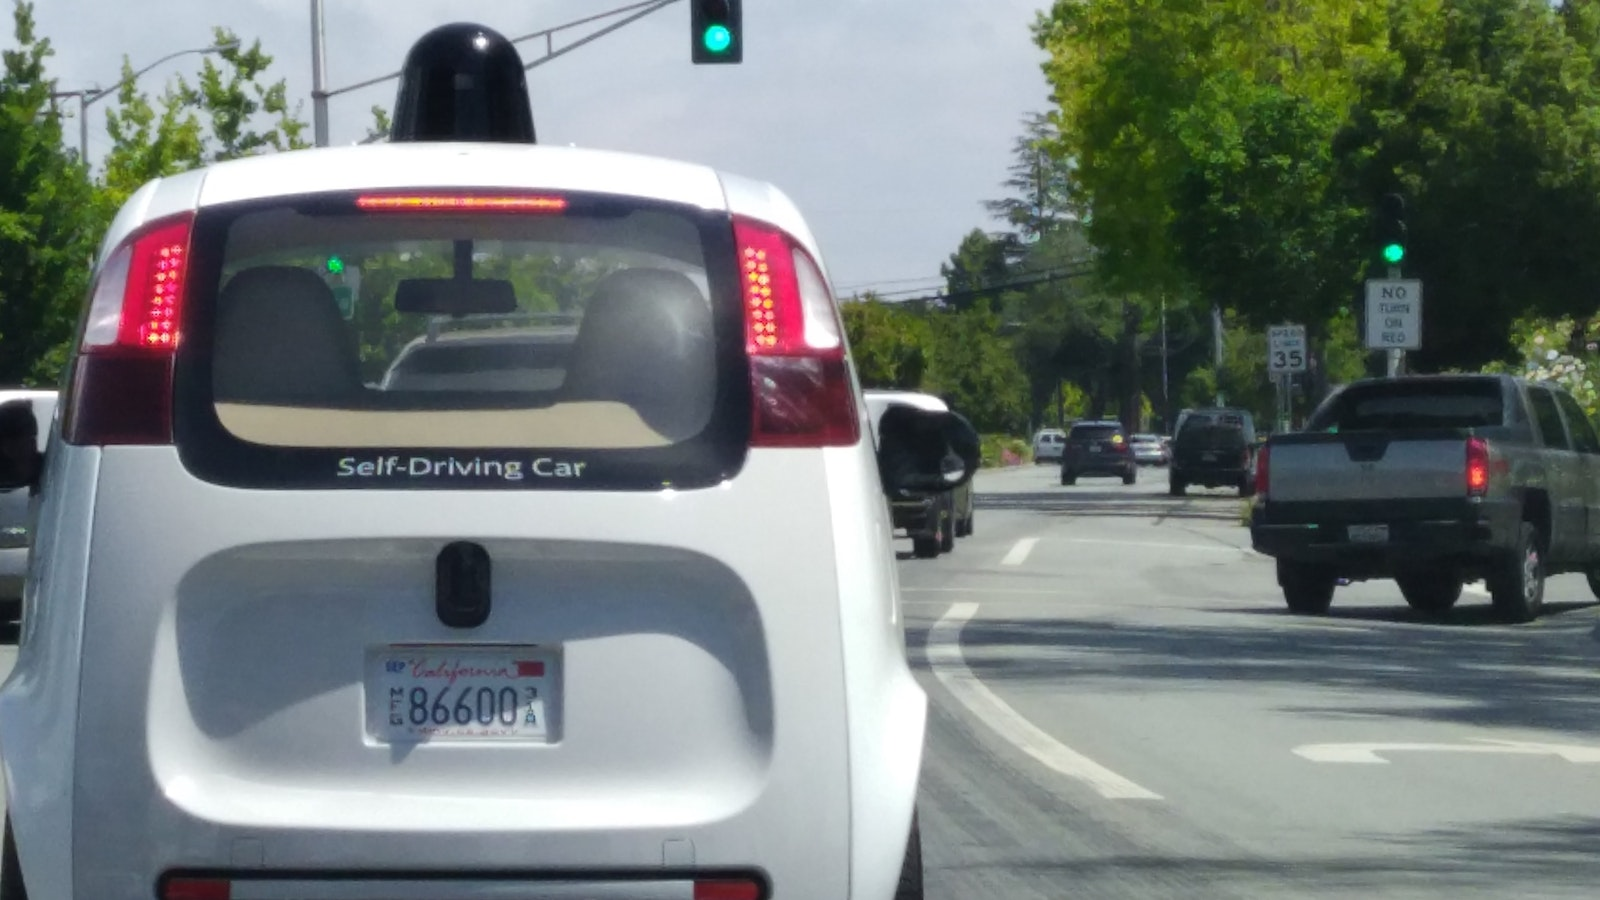 A Google self-driving car on the road in Mountain View, Calif. Photo by Amir Efrati.